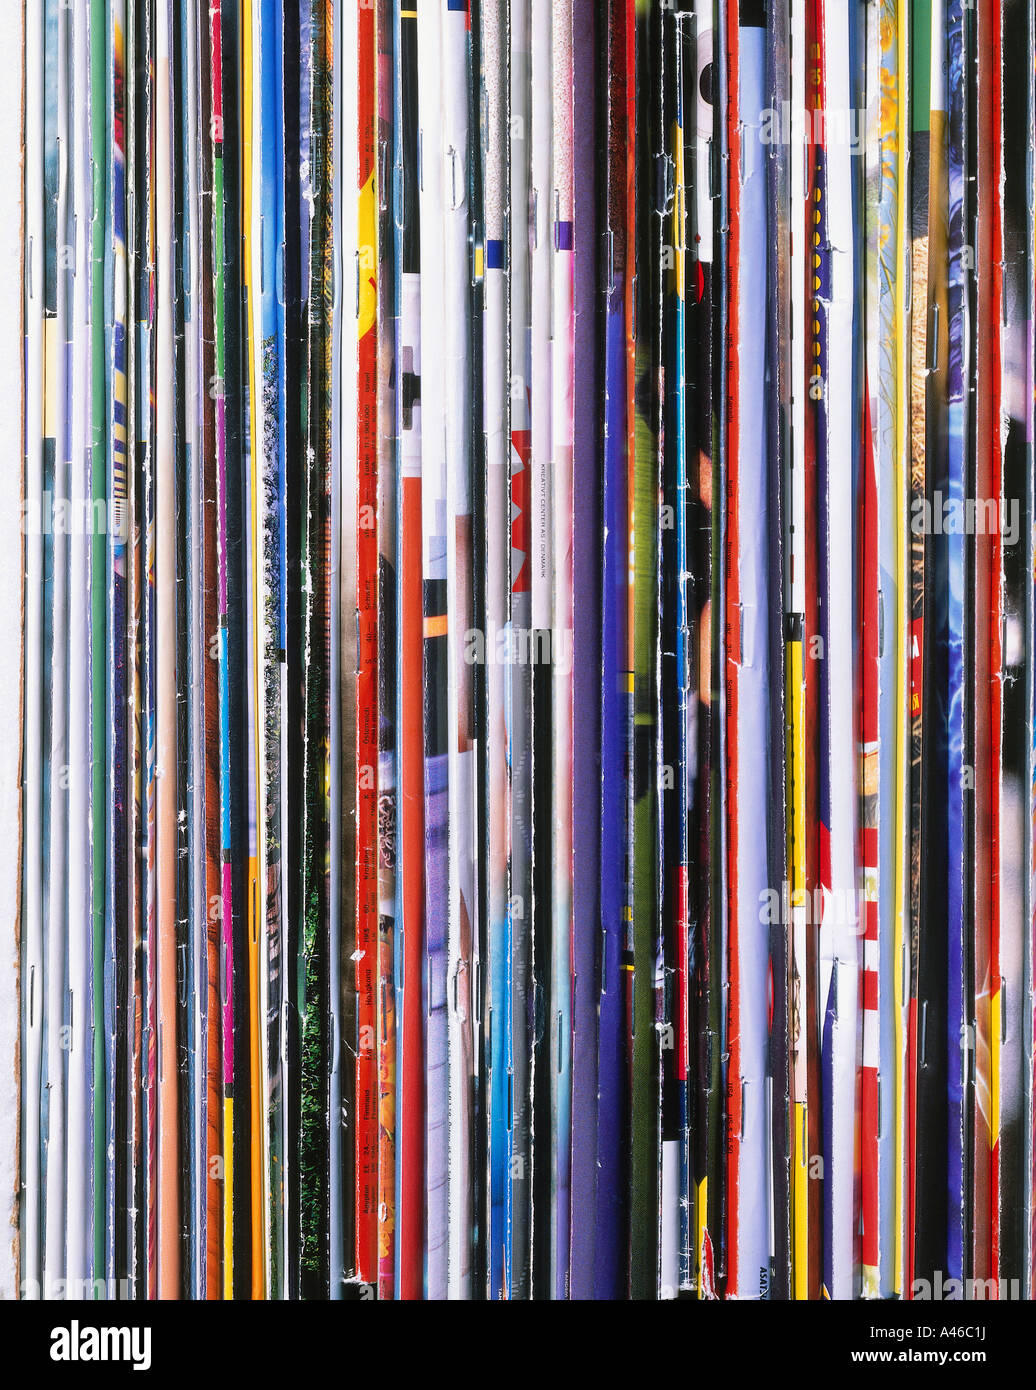 A pile of magazines - Stock Image